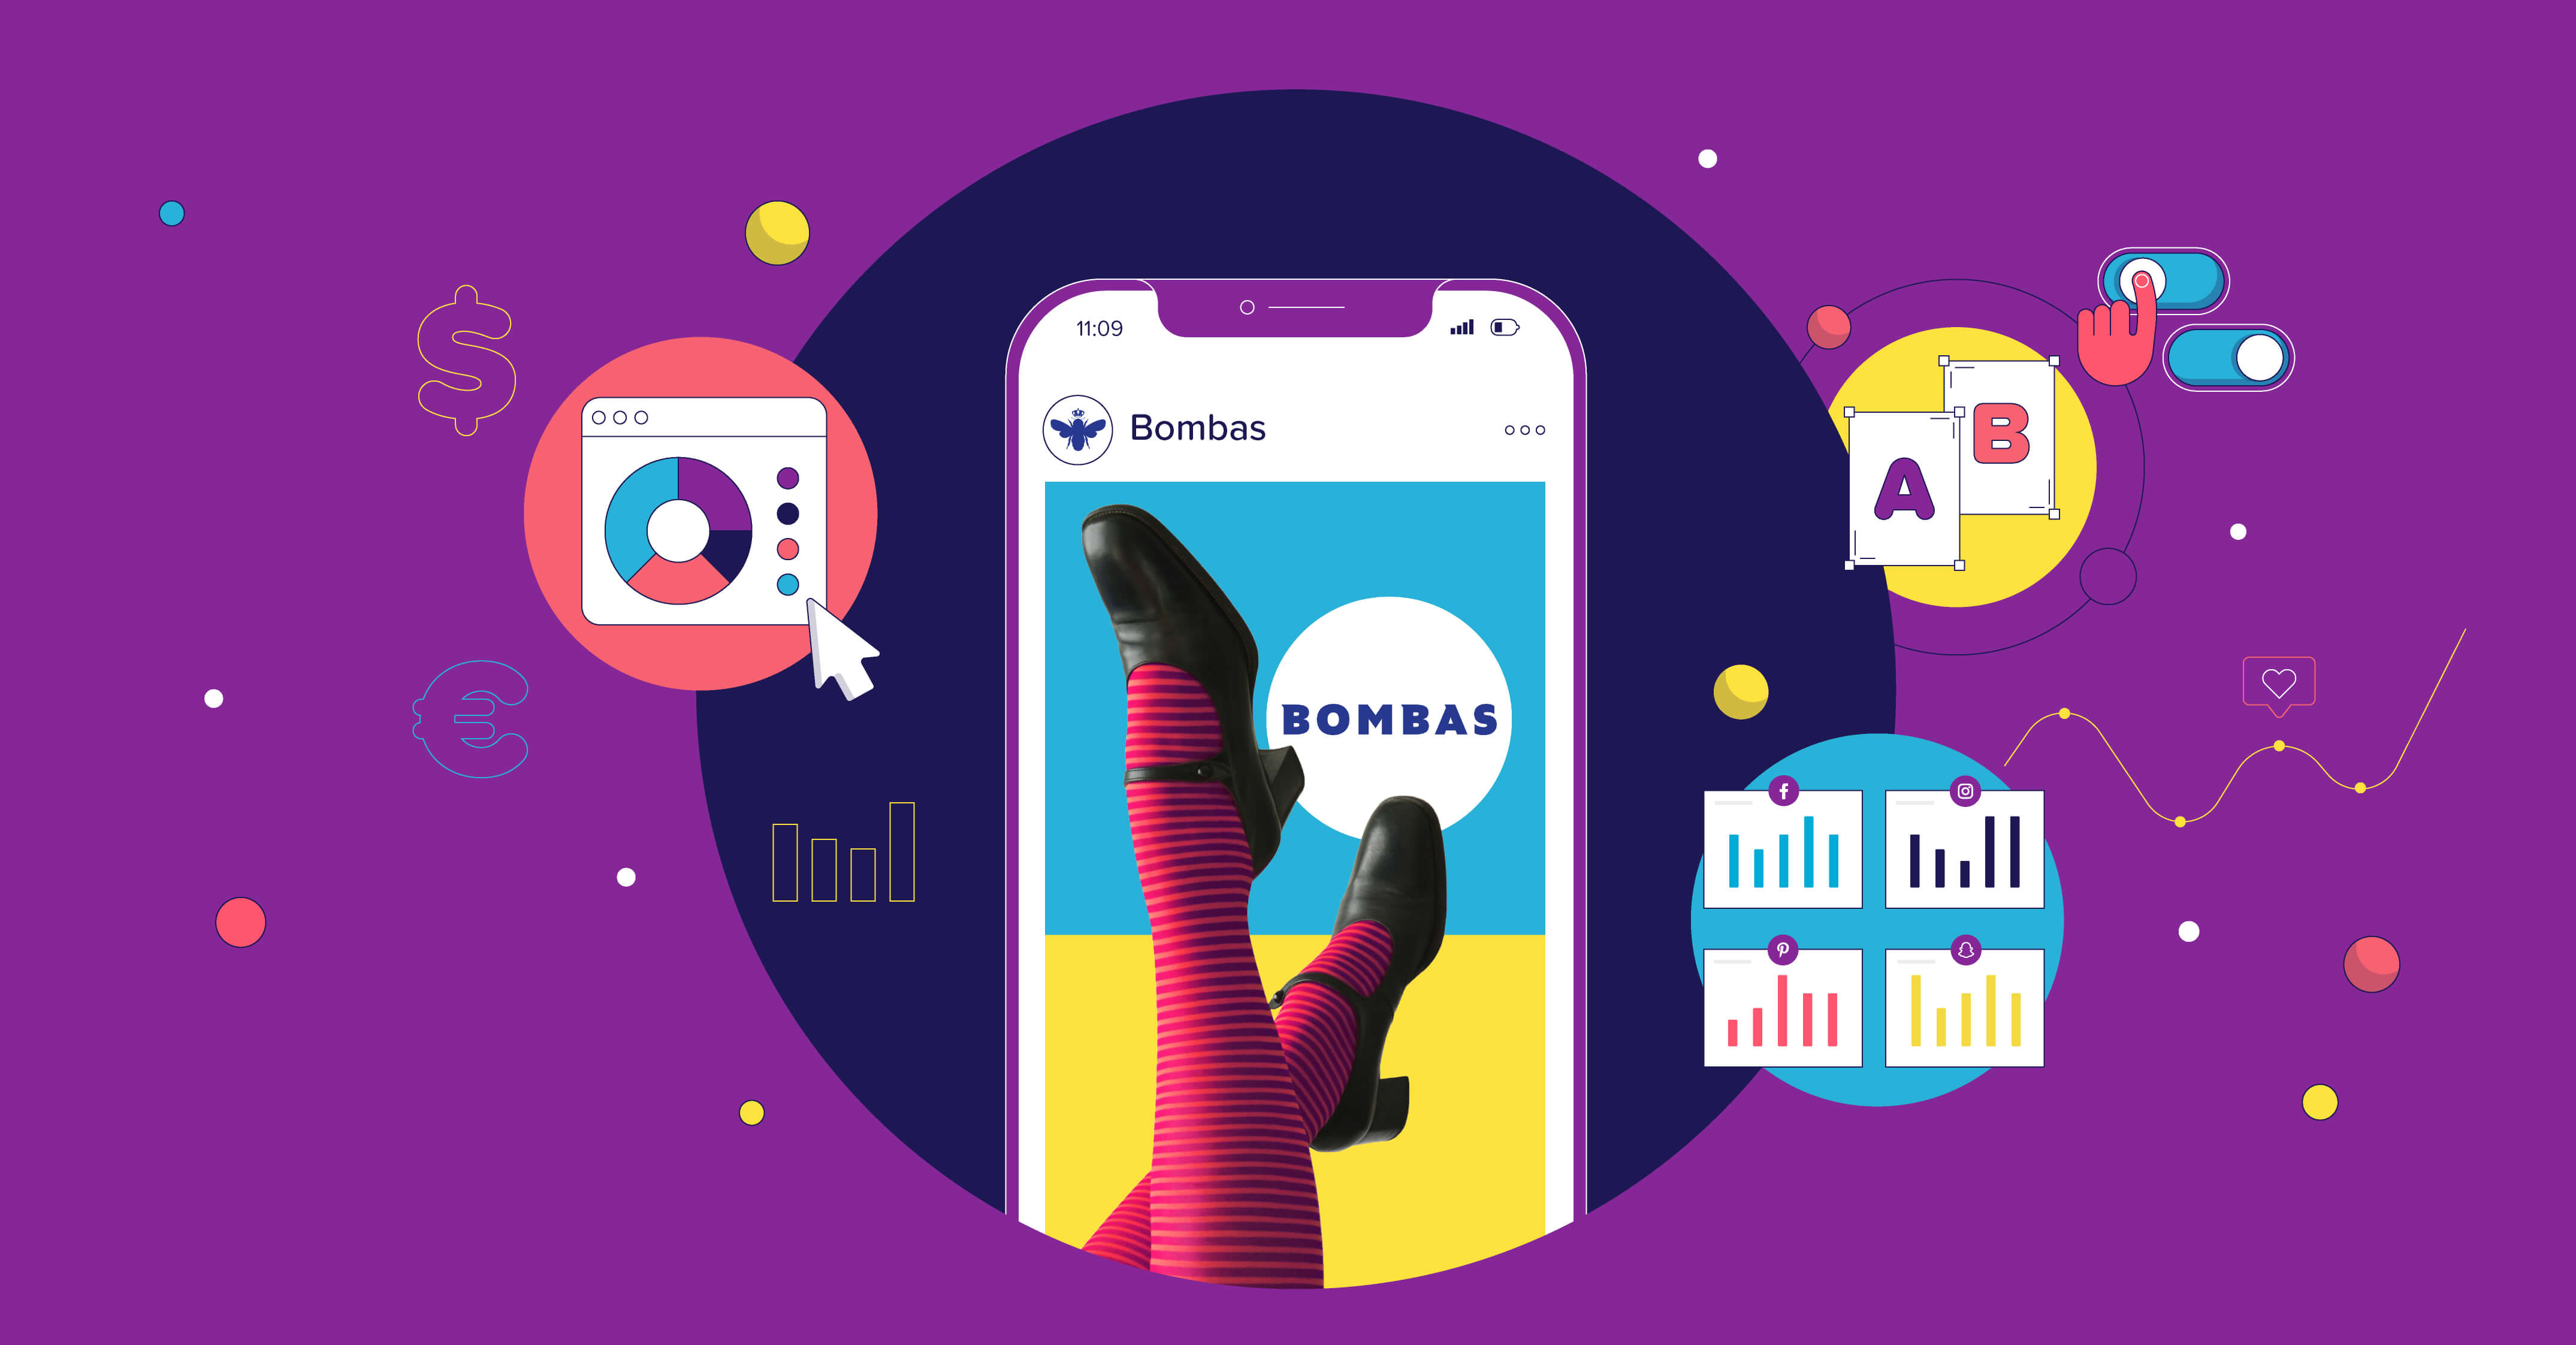 How Bombas Unlocked Growth by Diversifying Their Media Mix